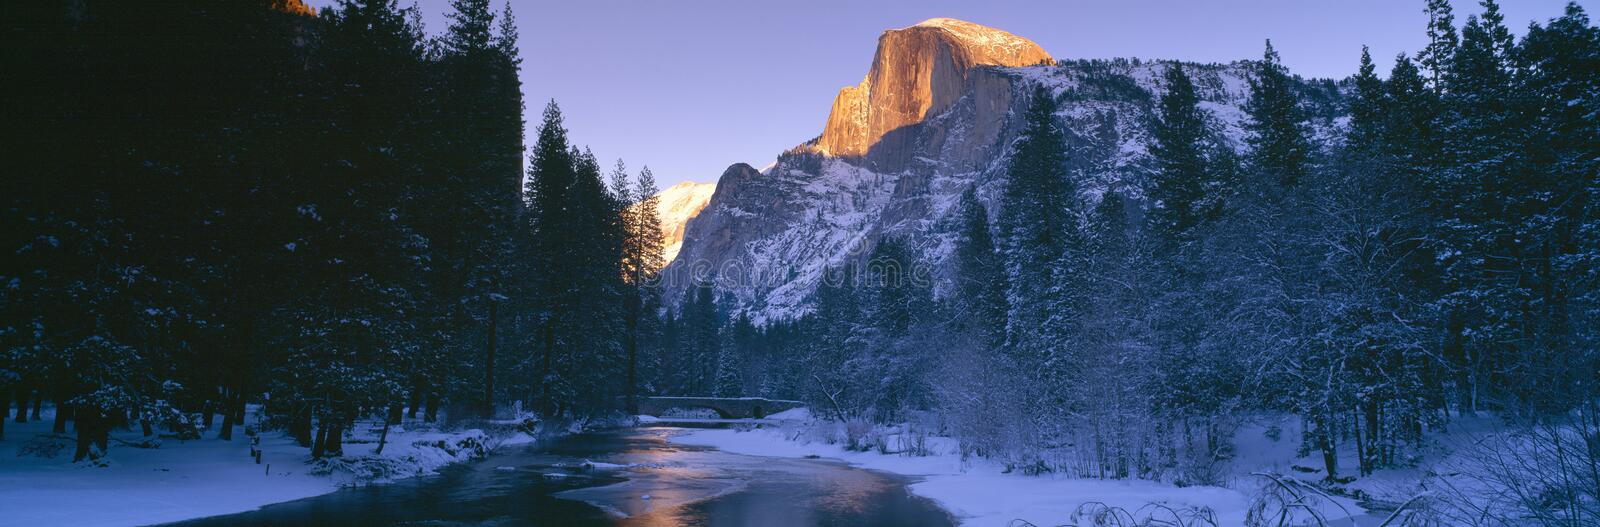 Sunset over Merced River and Half Dome, Yosemite, California royalty free stock image